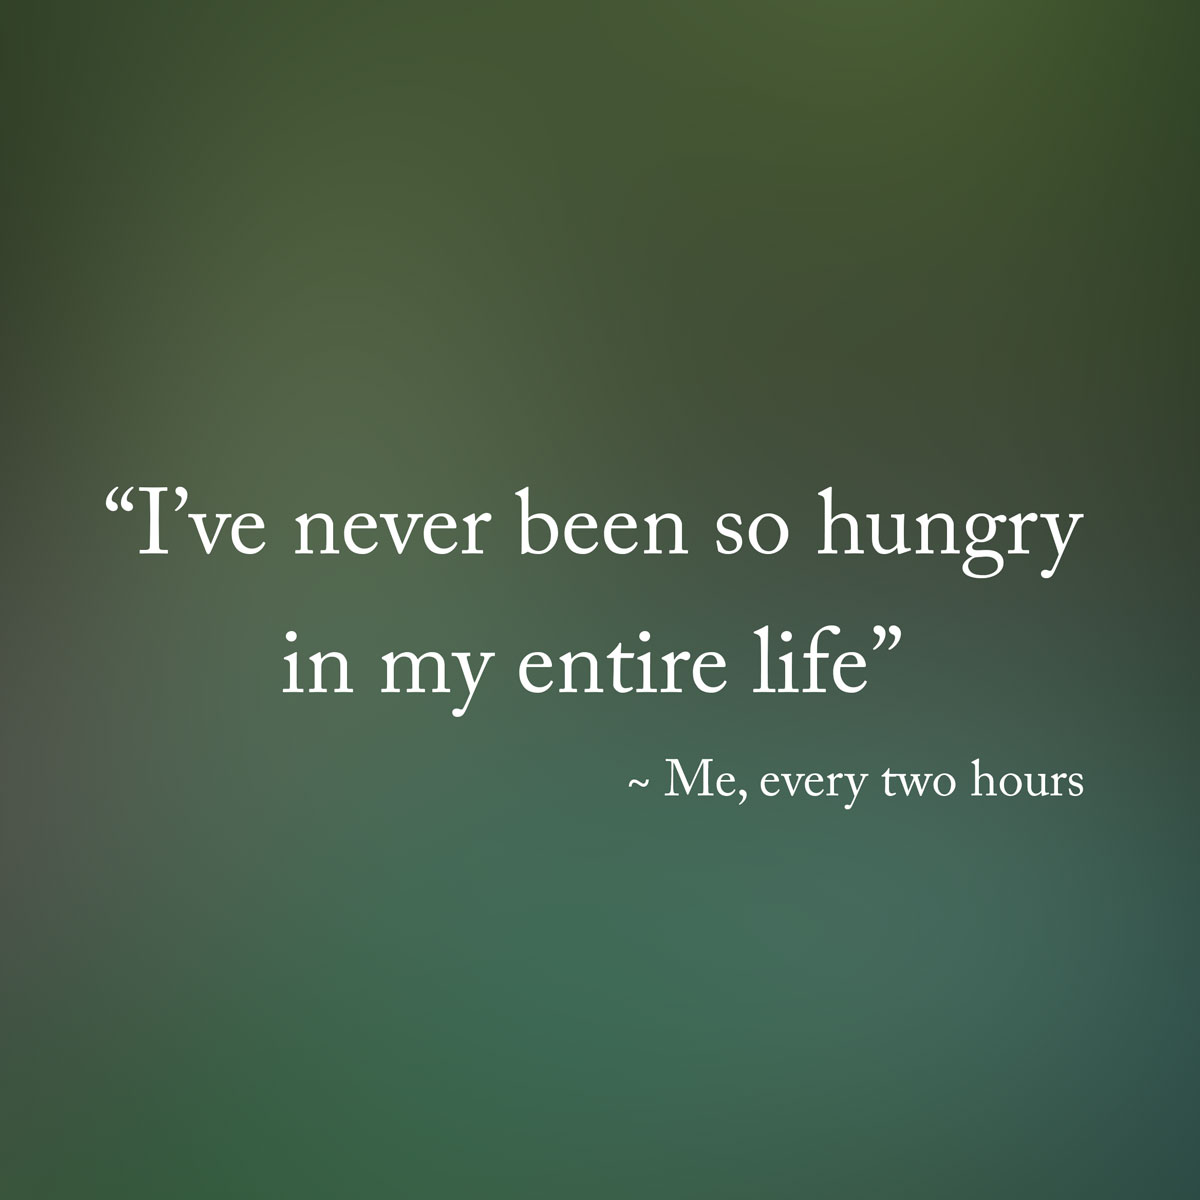 I have never been so hungry my entire life - diet quotes